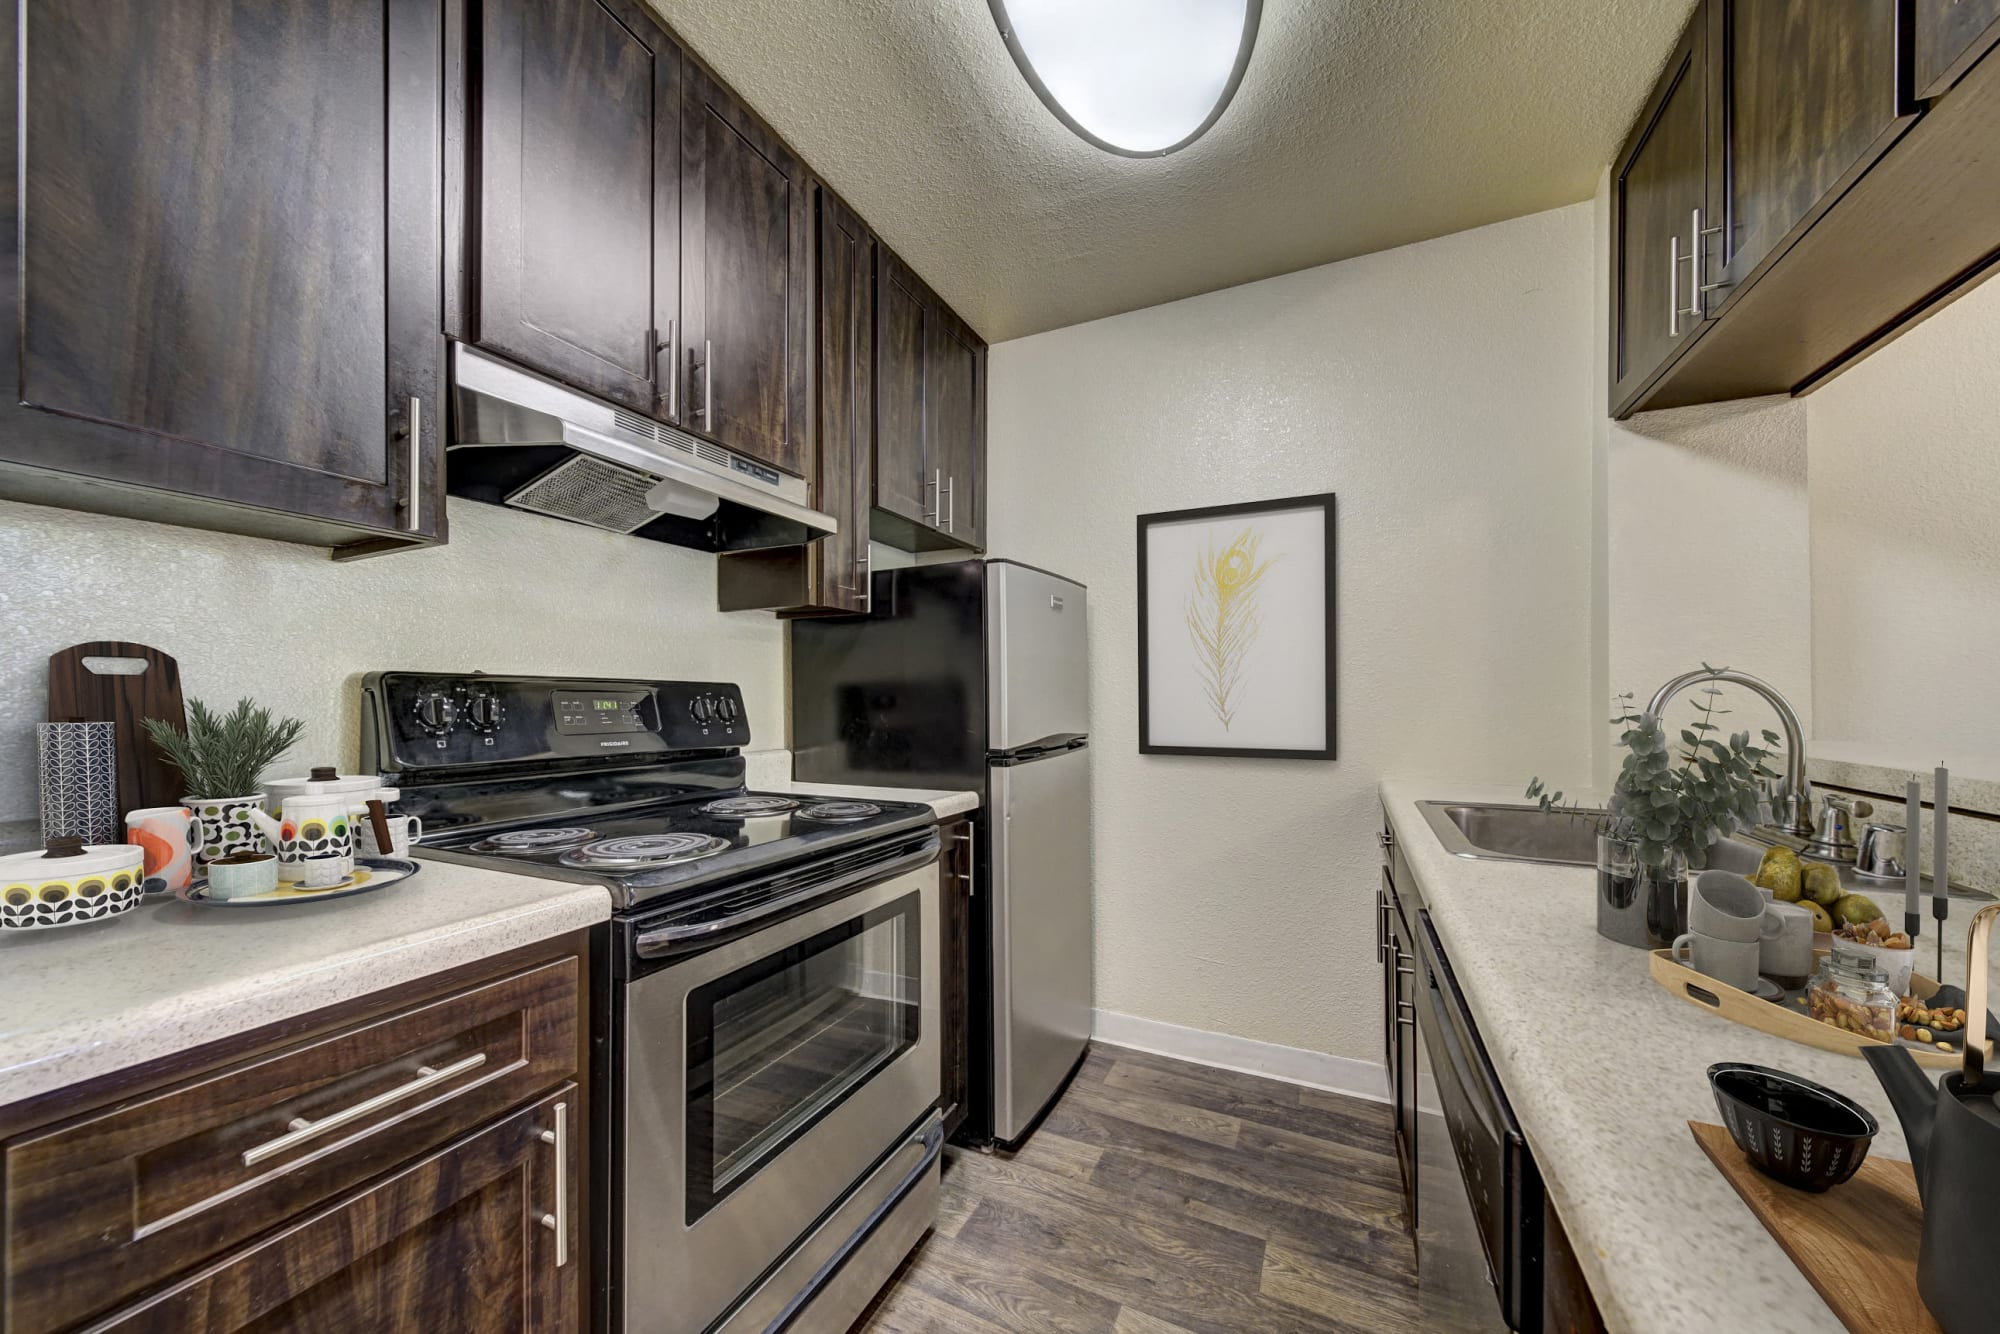 Renovated brown kitchen with stainless steel appliances at The Timbers Apartments in Hayward, California